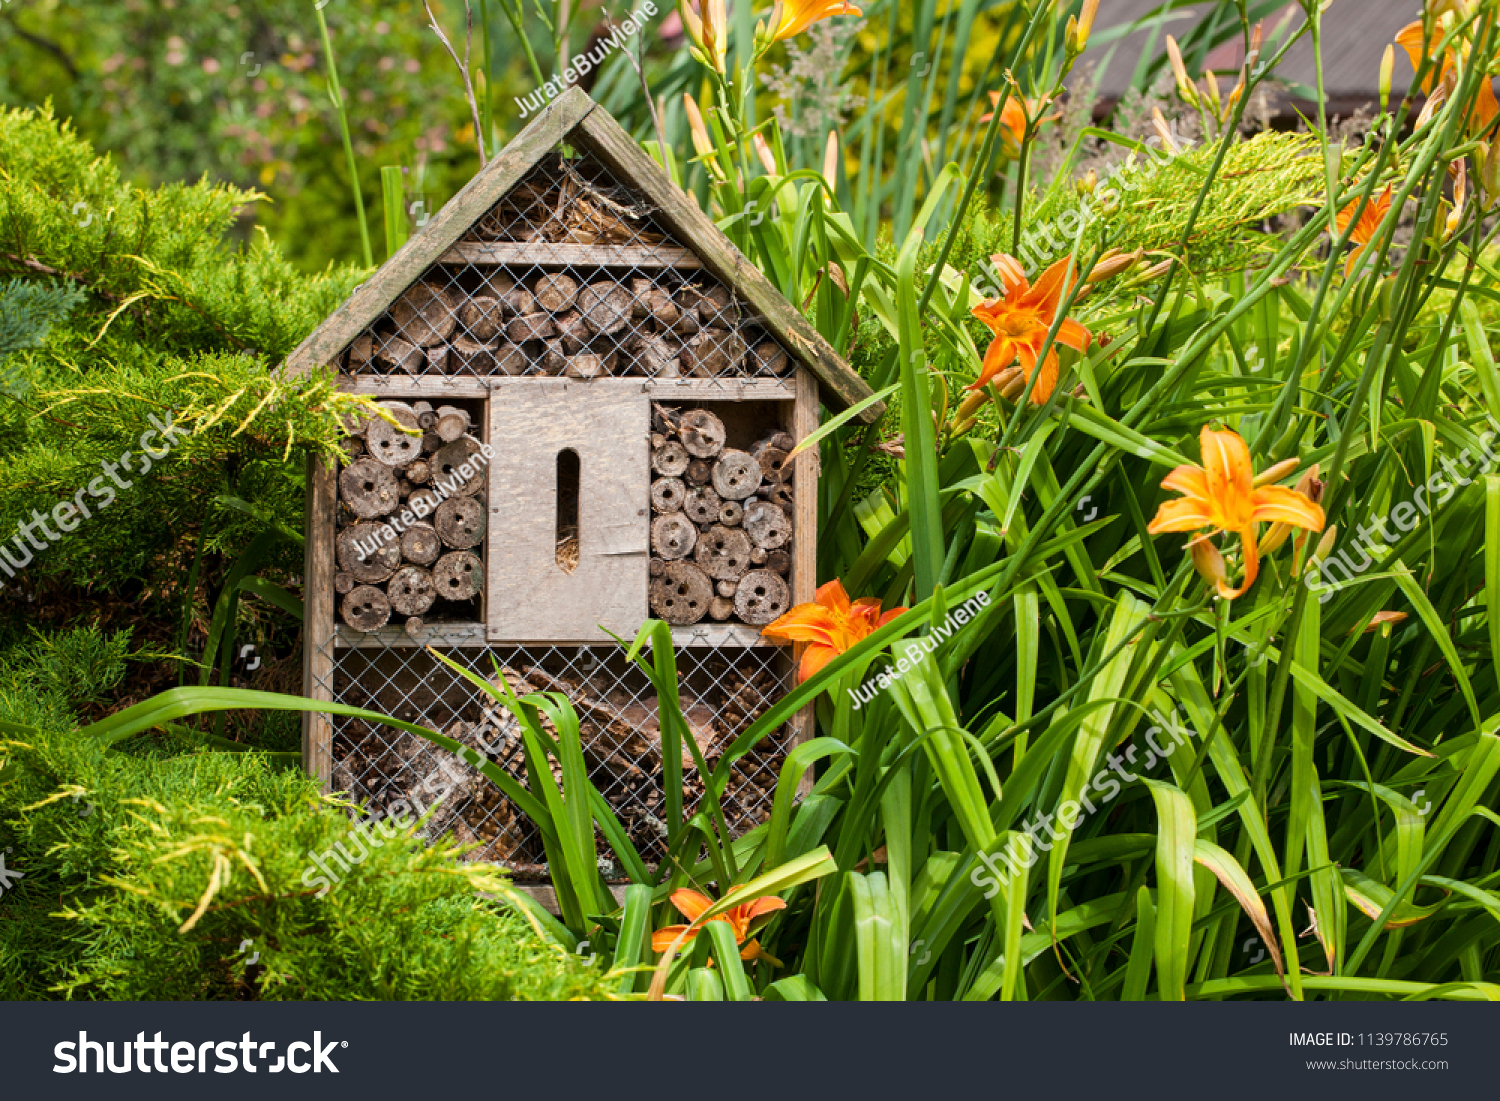 Insect house - hotel in a summer garden #1139786765